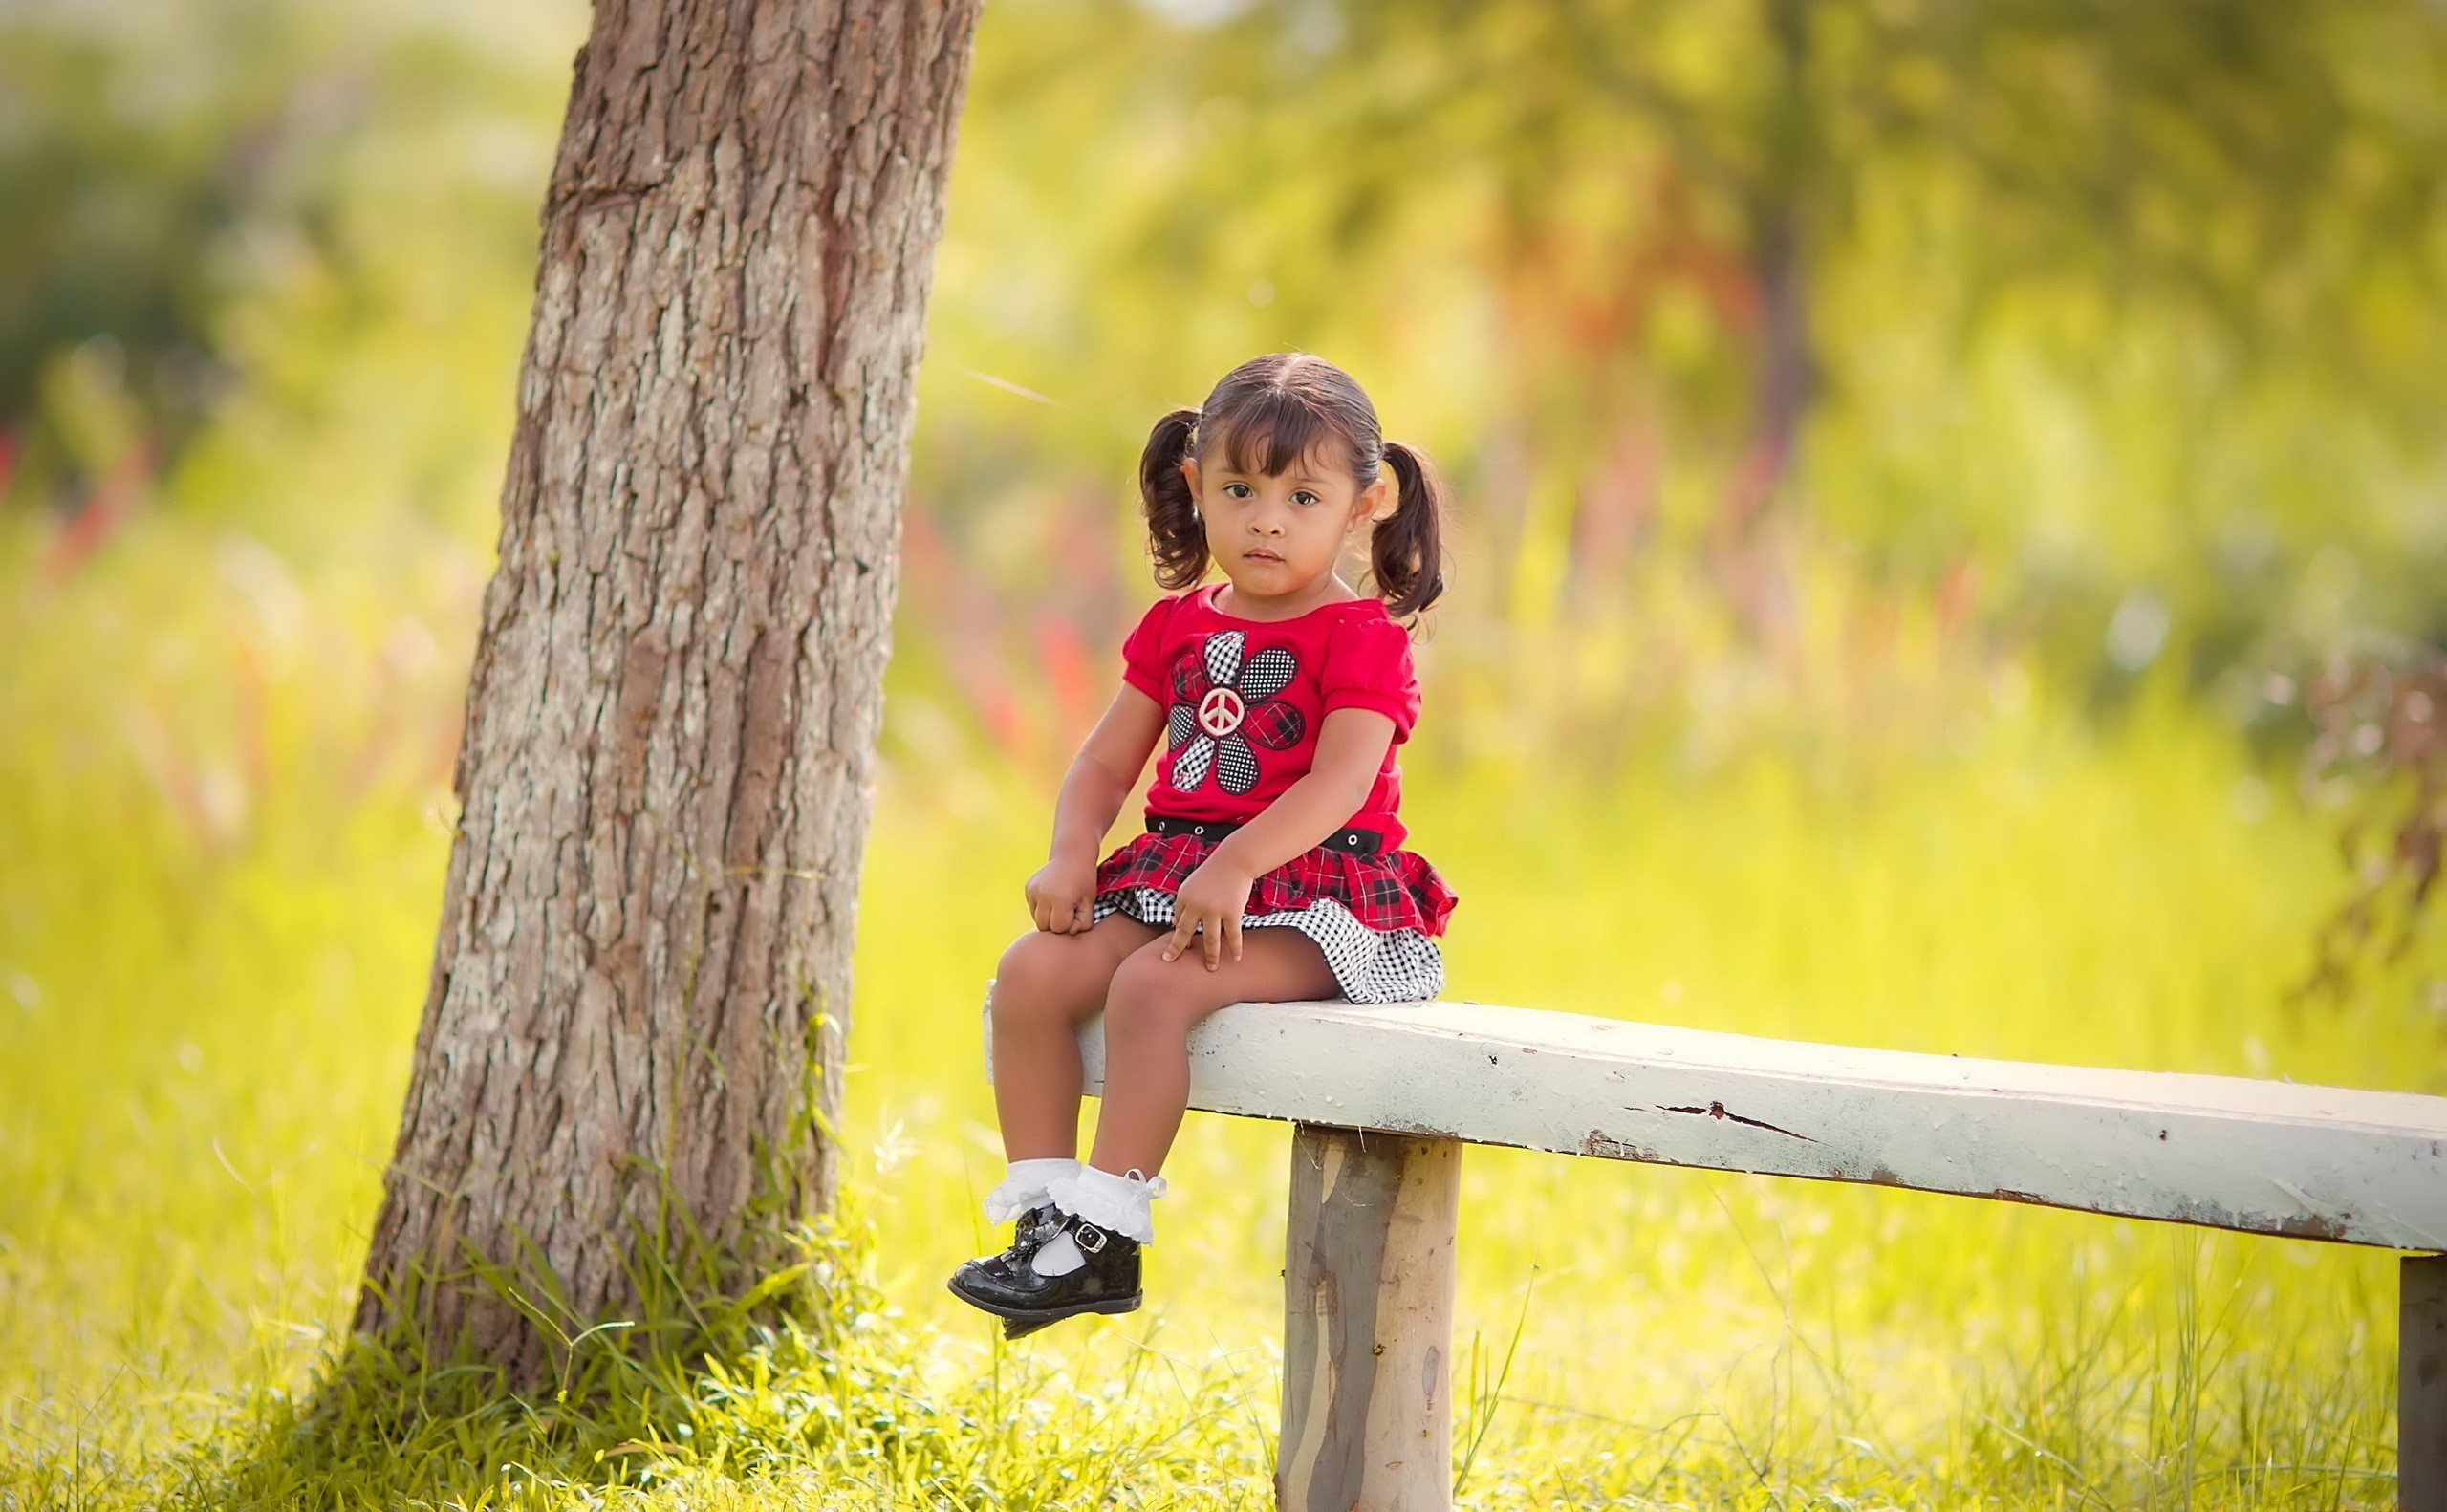 sad little girl sitting on bench wallpapers 2560x1582 673746